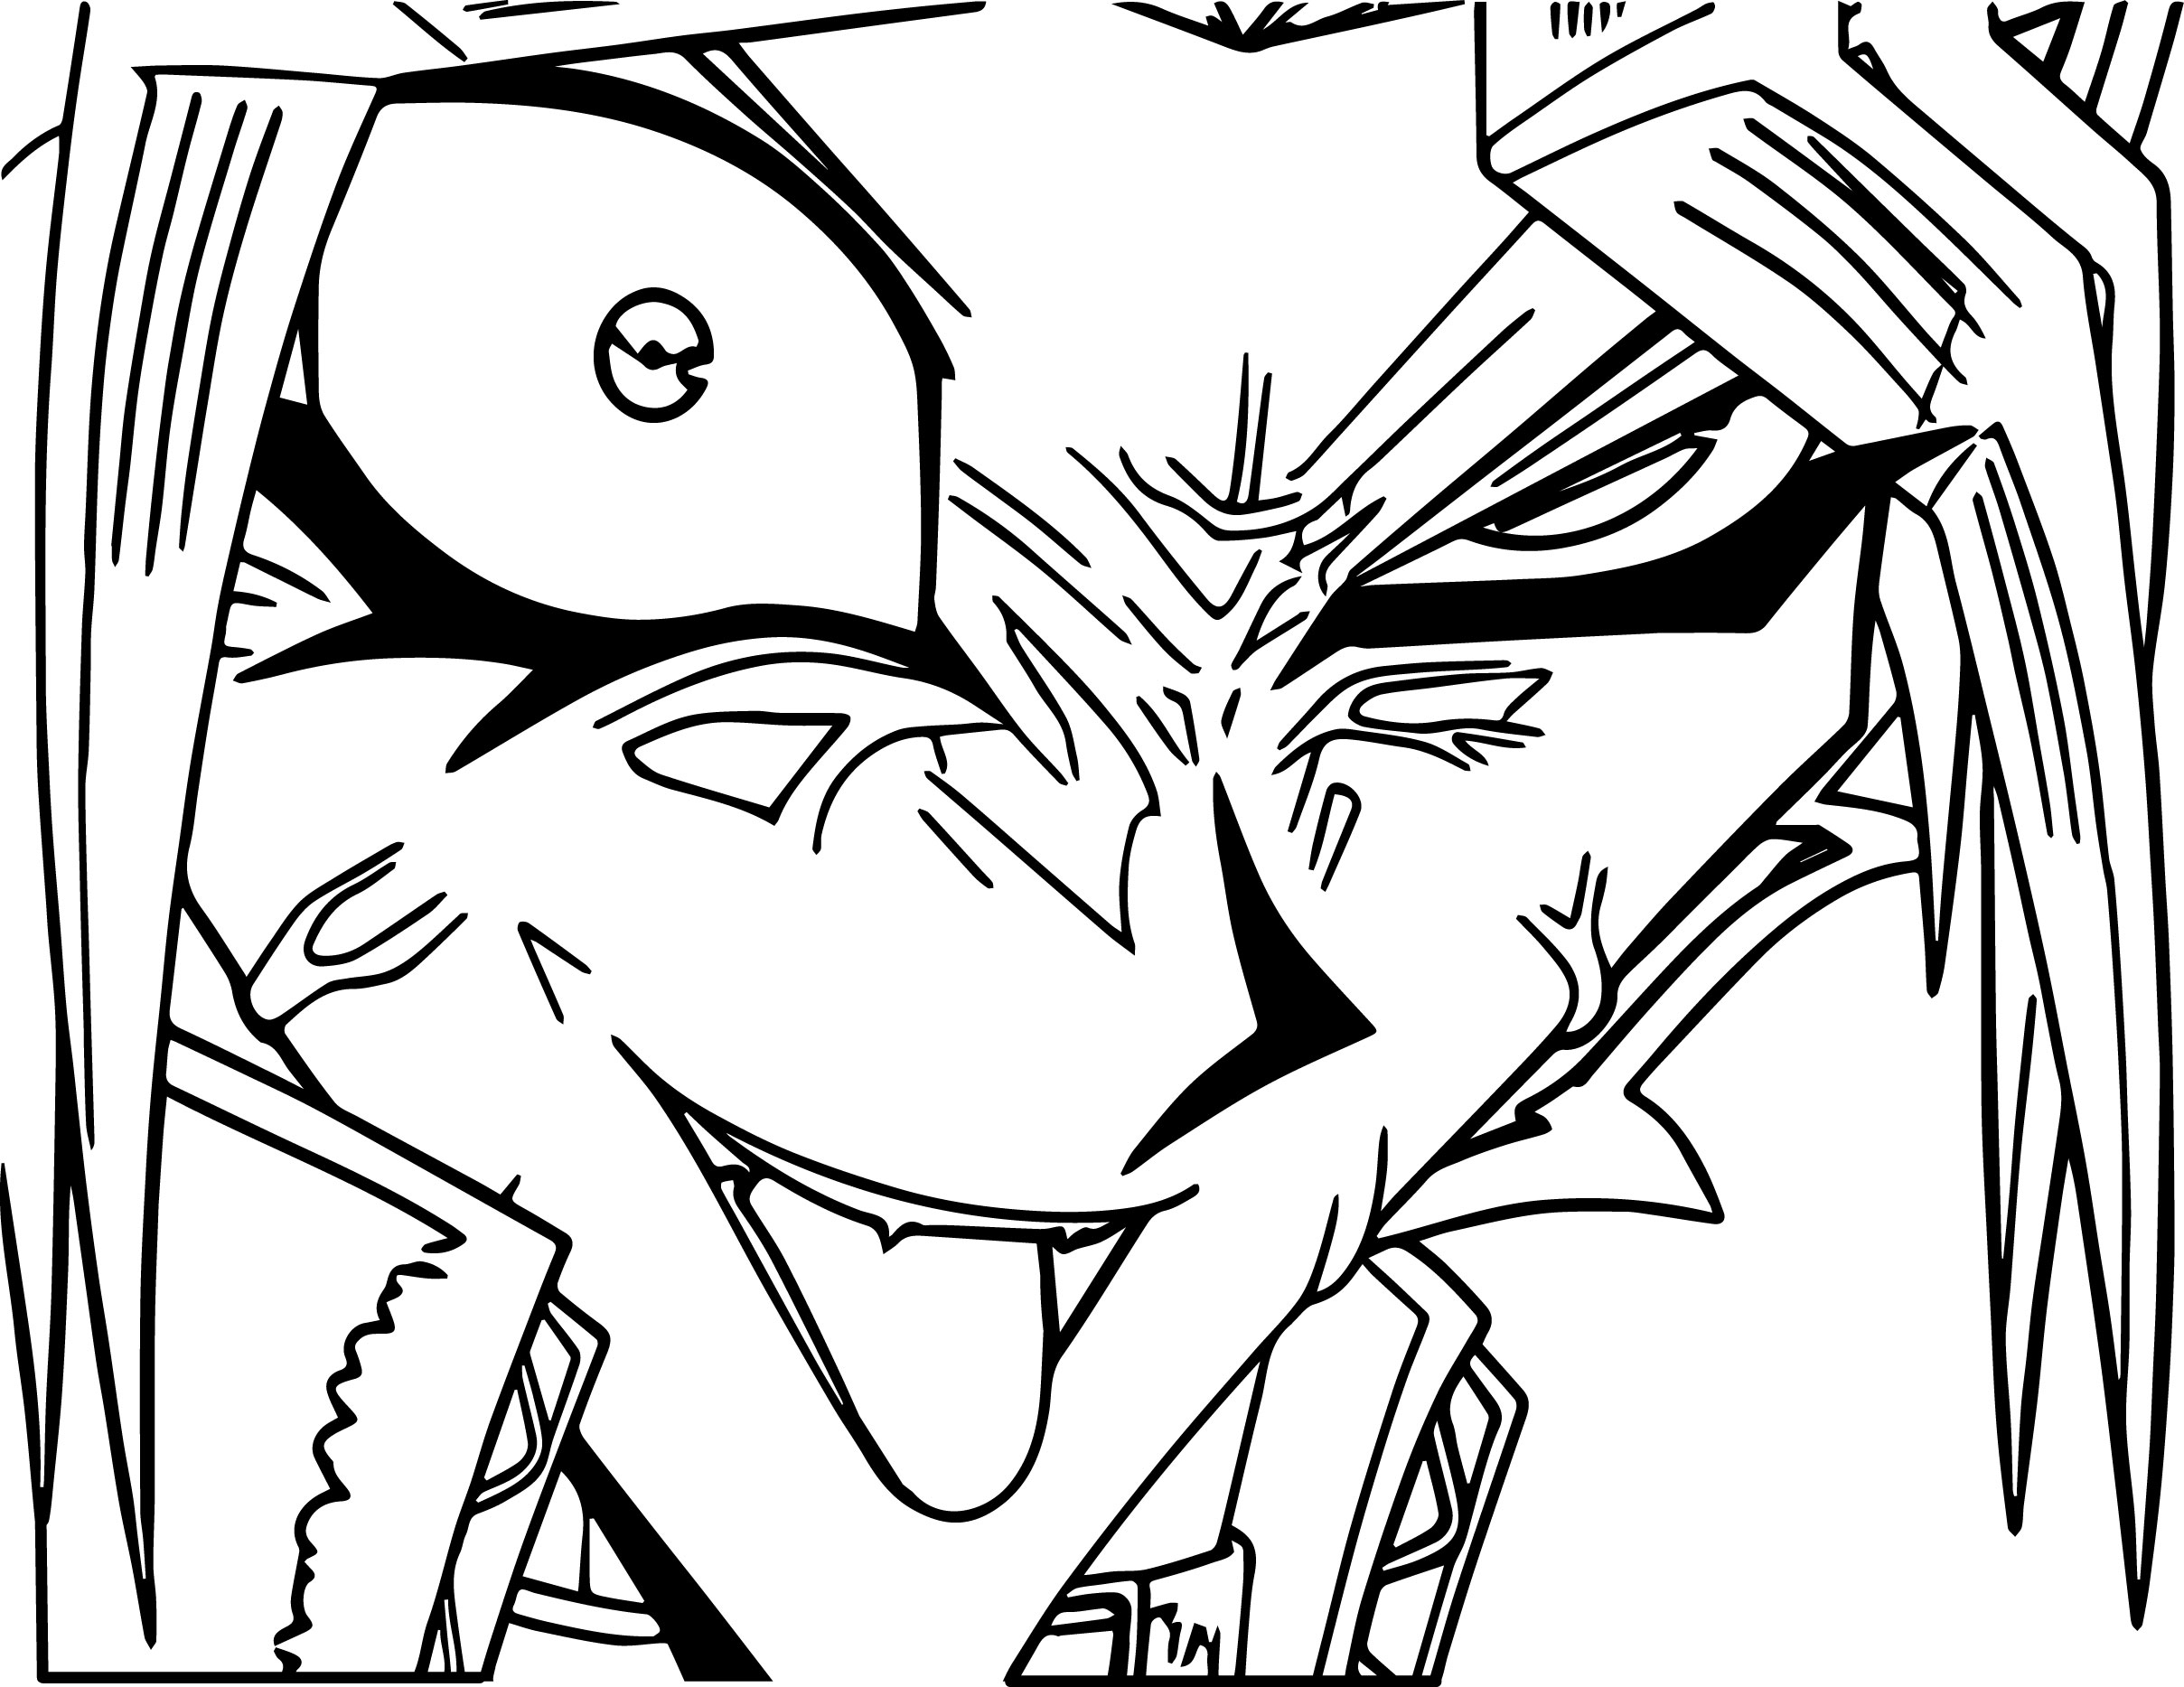 yugioh coloring pages - crazy yu gi oh yugioh character coloring page